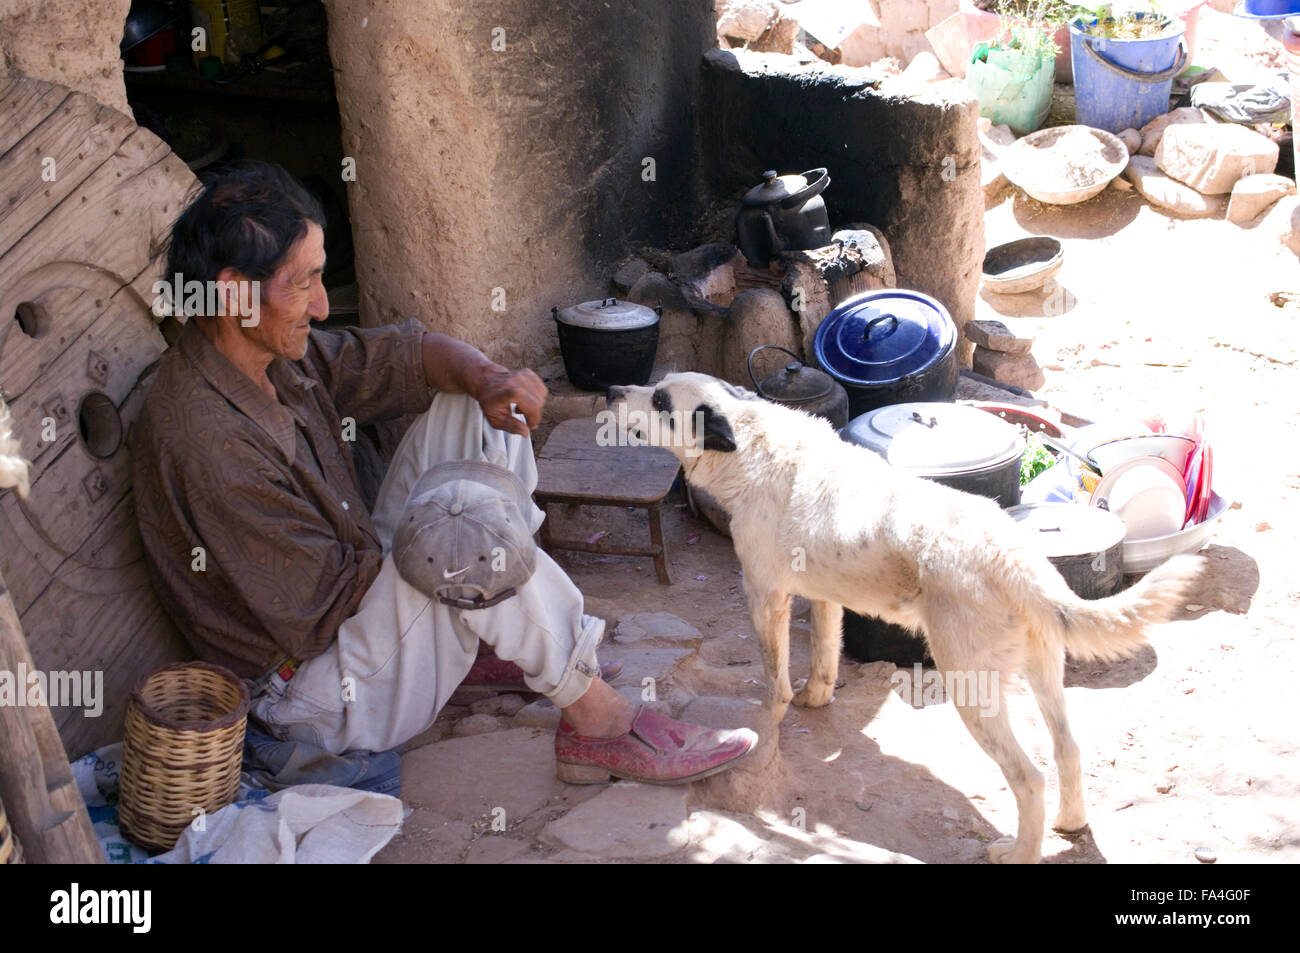 Stray dog in Bolivia sniffing a poor man's hands, who is holding a dingy grey baseball cap - Stock Image